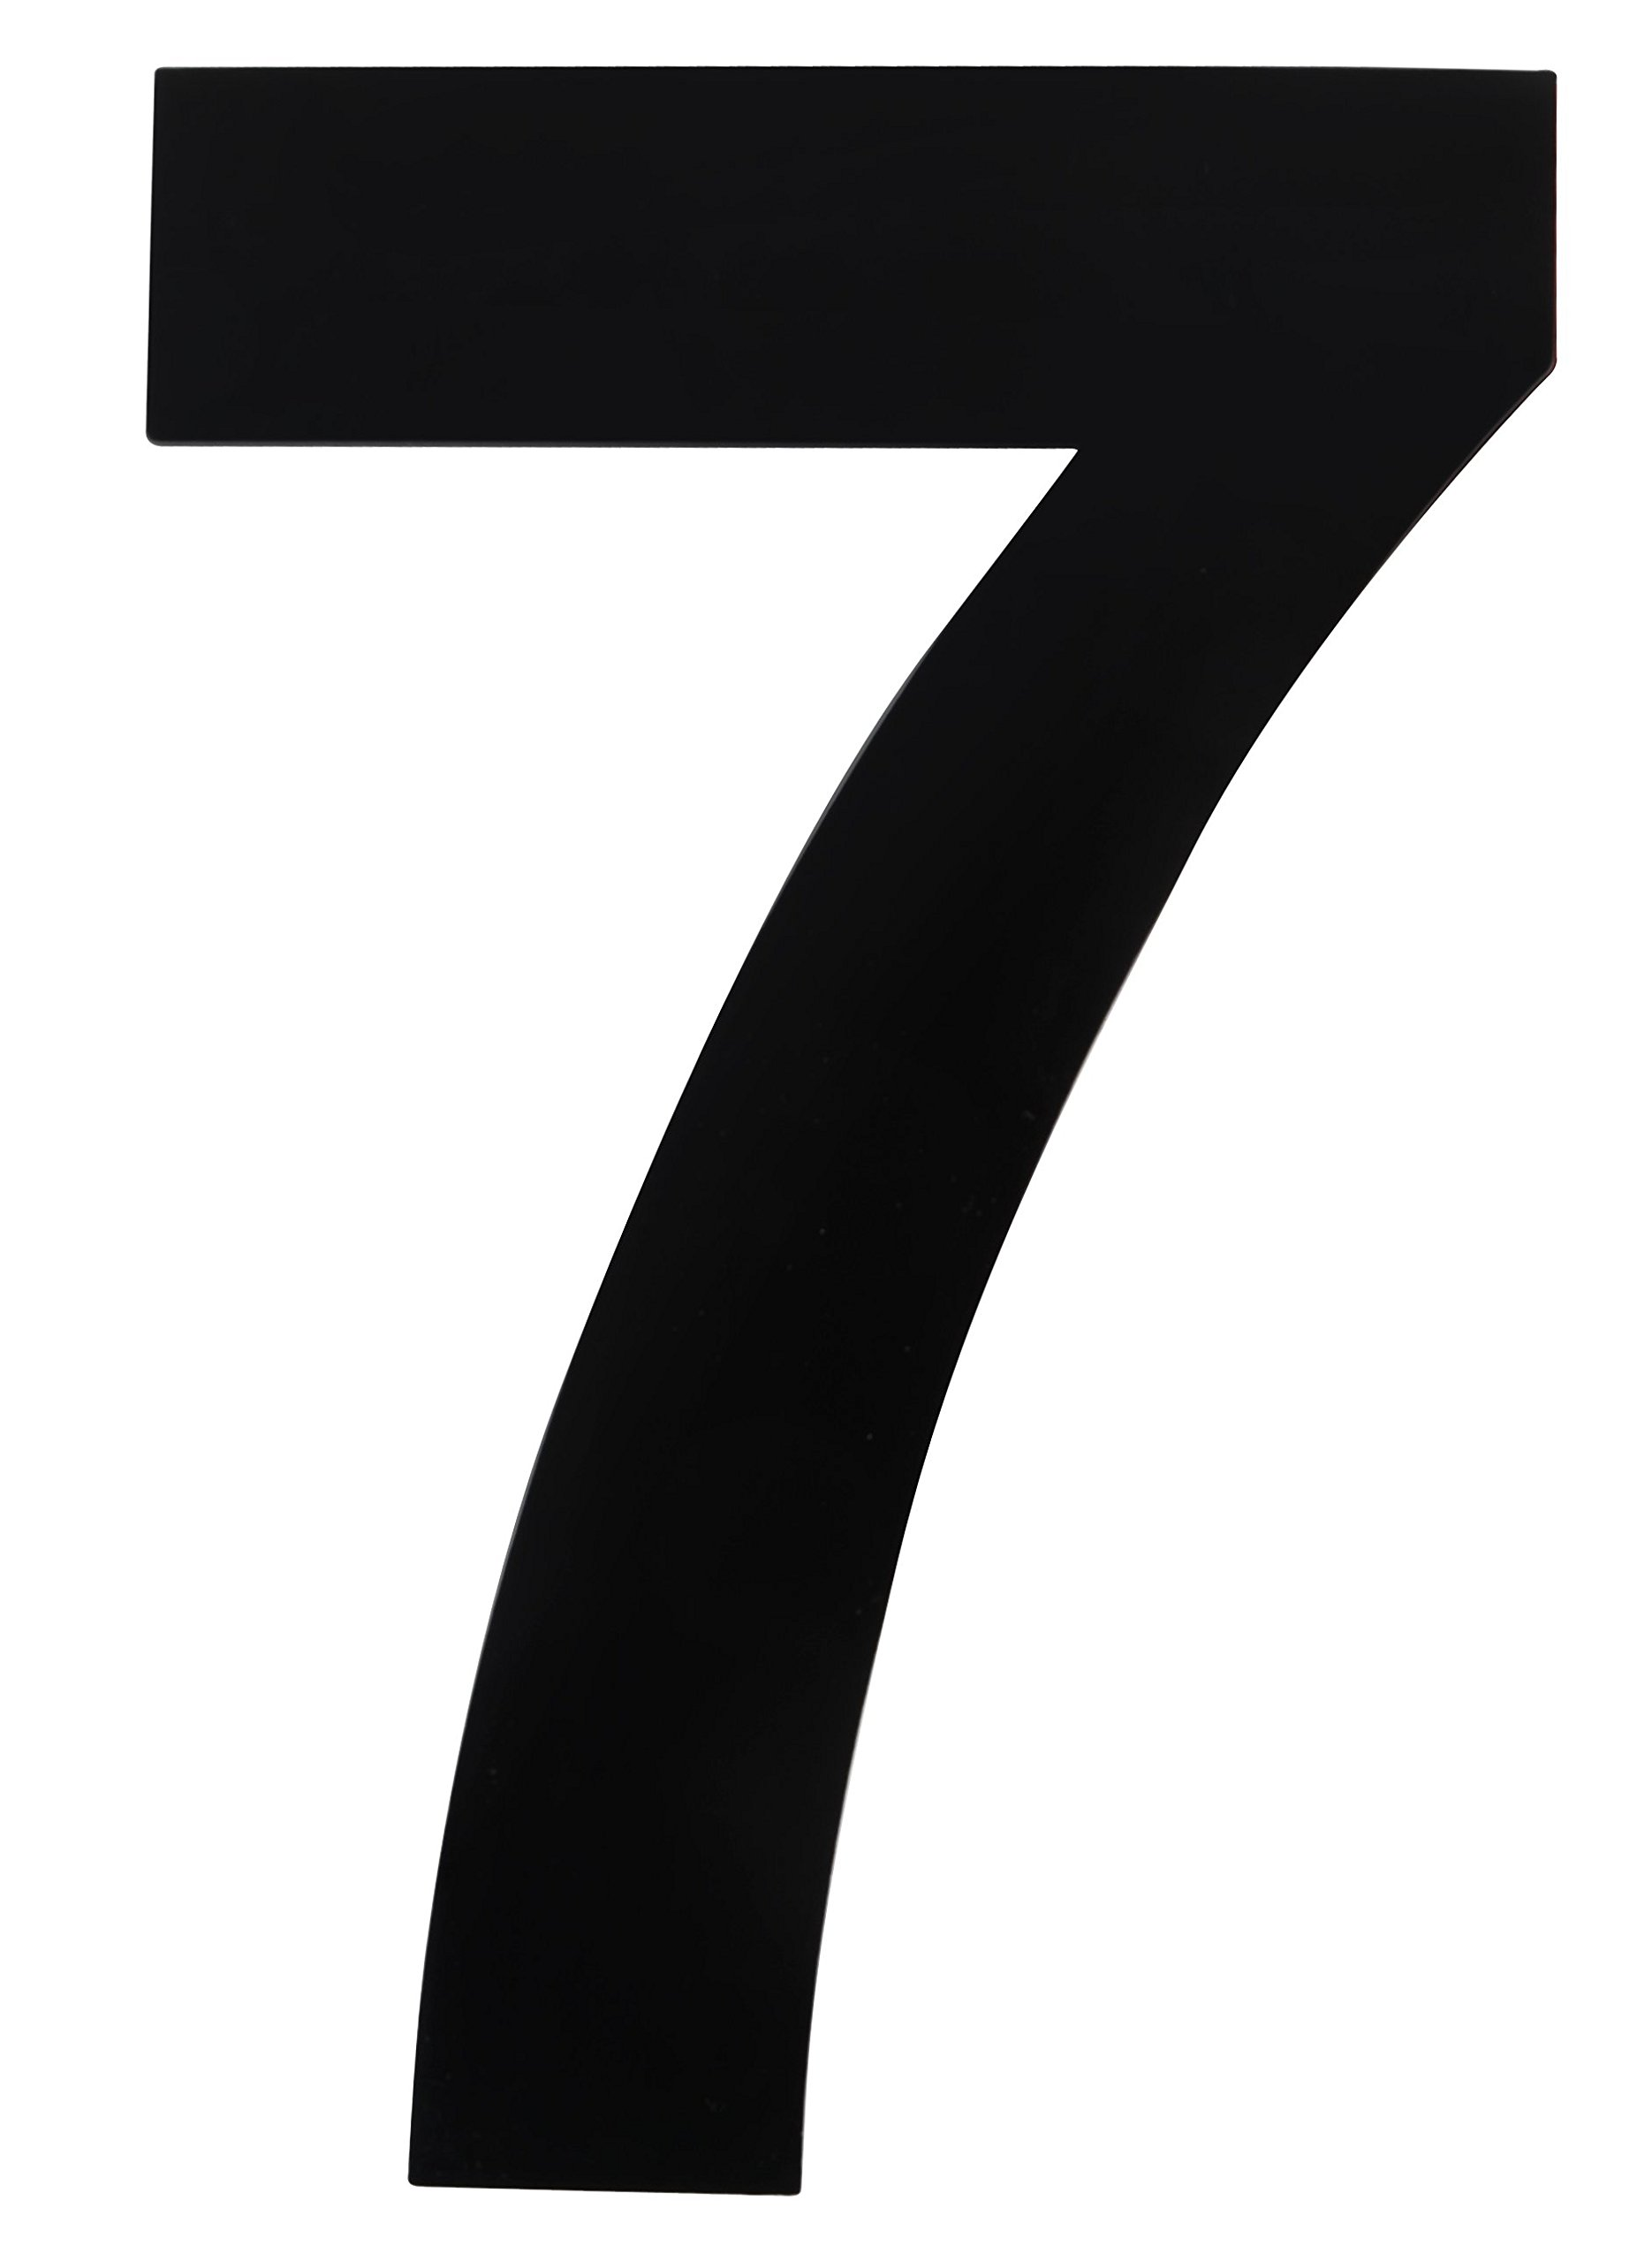 QT Modern House Number - 6 Inch Black - Stainless Steel (Number 7 Seven), Floating Appearance, Easy to Install and Made of Solid 304 Stainless Steel